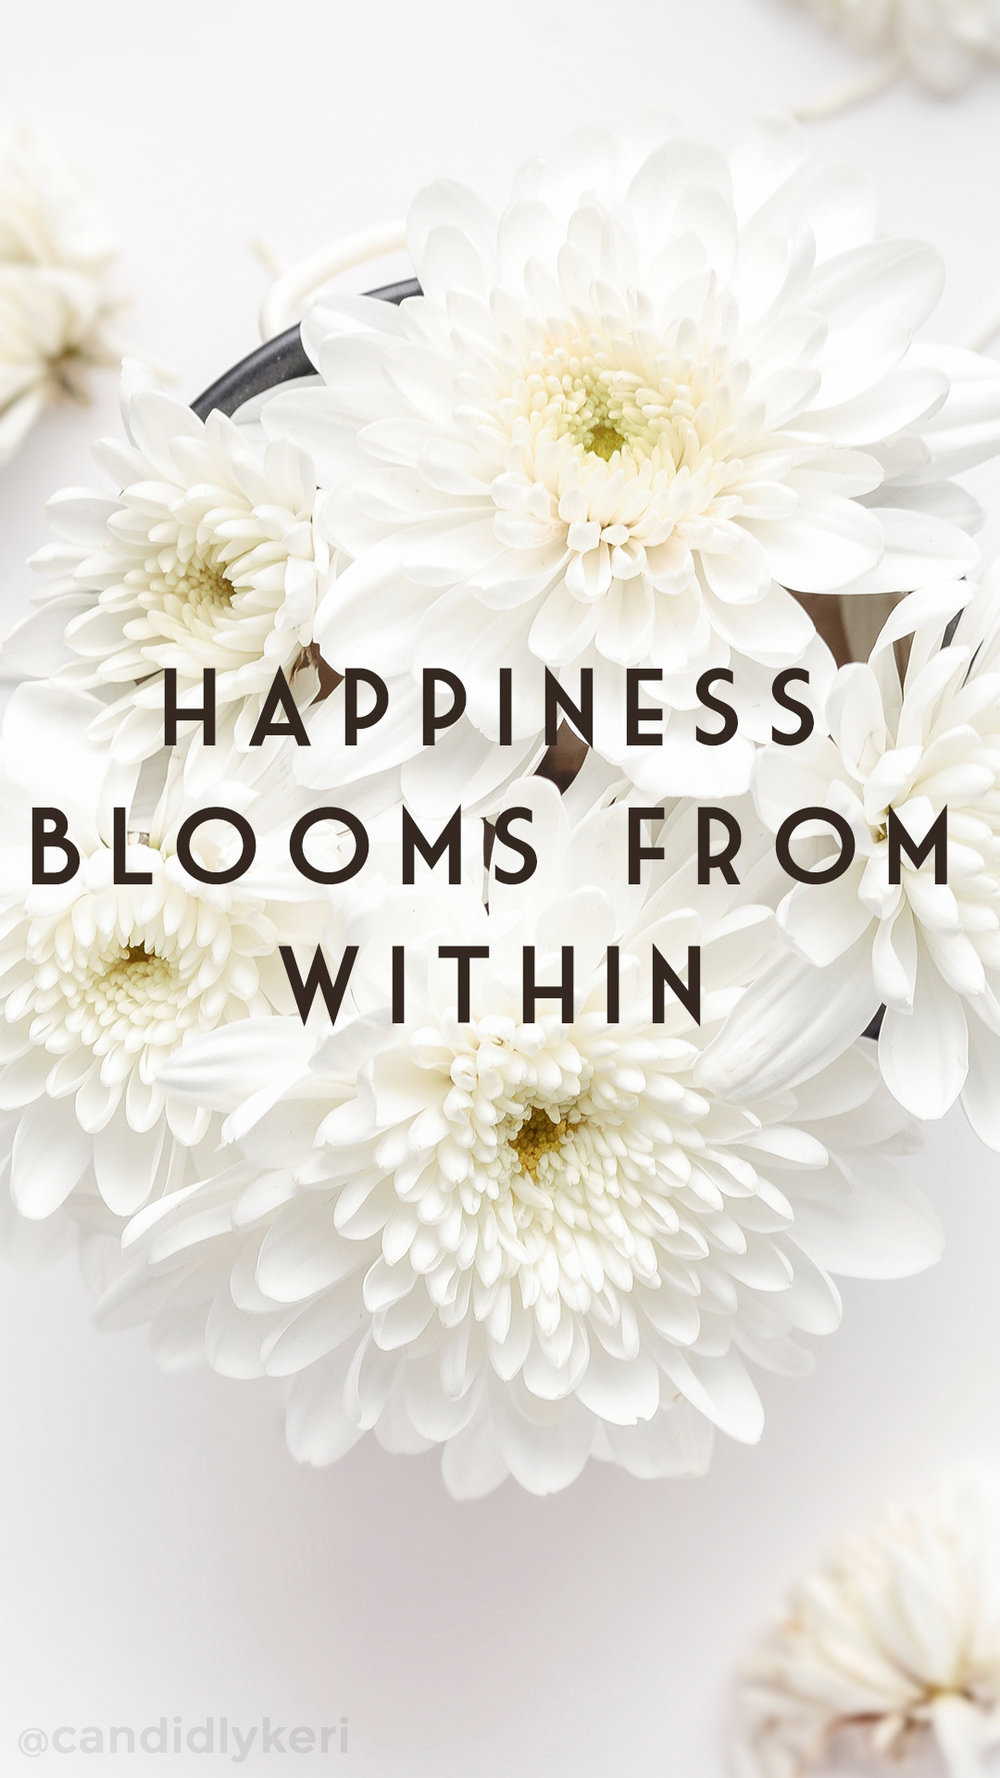 Happiness blooms from within